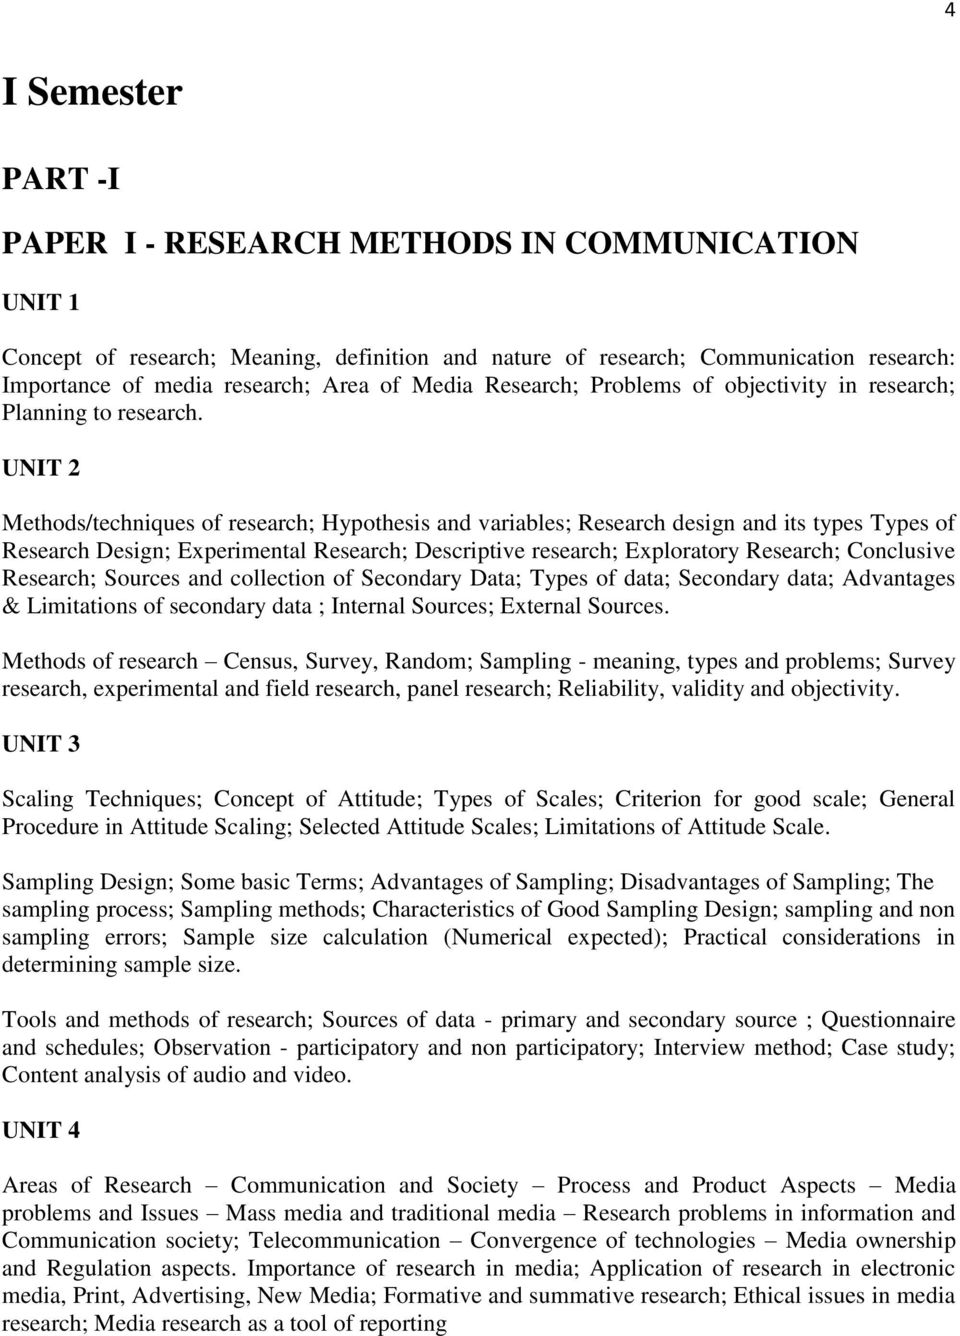 UNIT 2 Methods/techniques of research; Hypothesis and variables; Research design and its types Types of Research Design; Experimental Research; Descriptive research; Exploratory Research; Conclusive